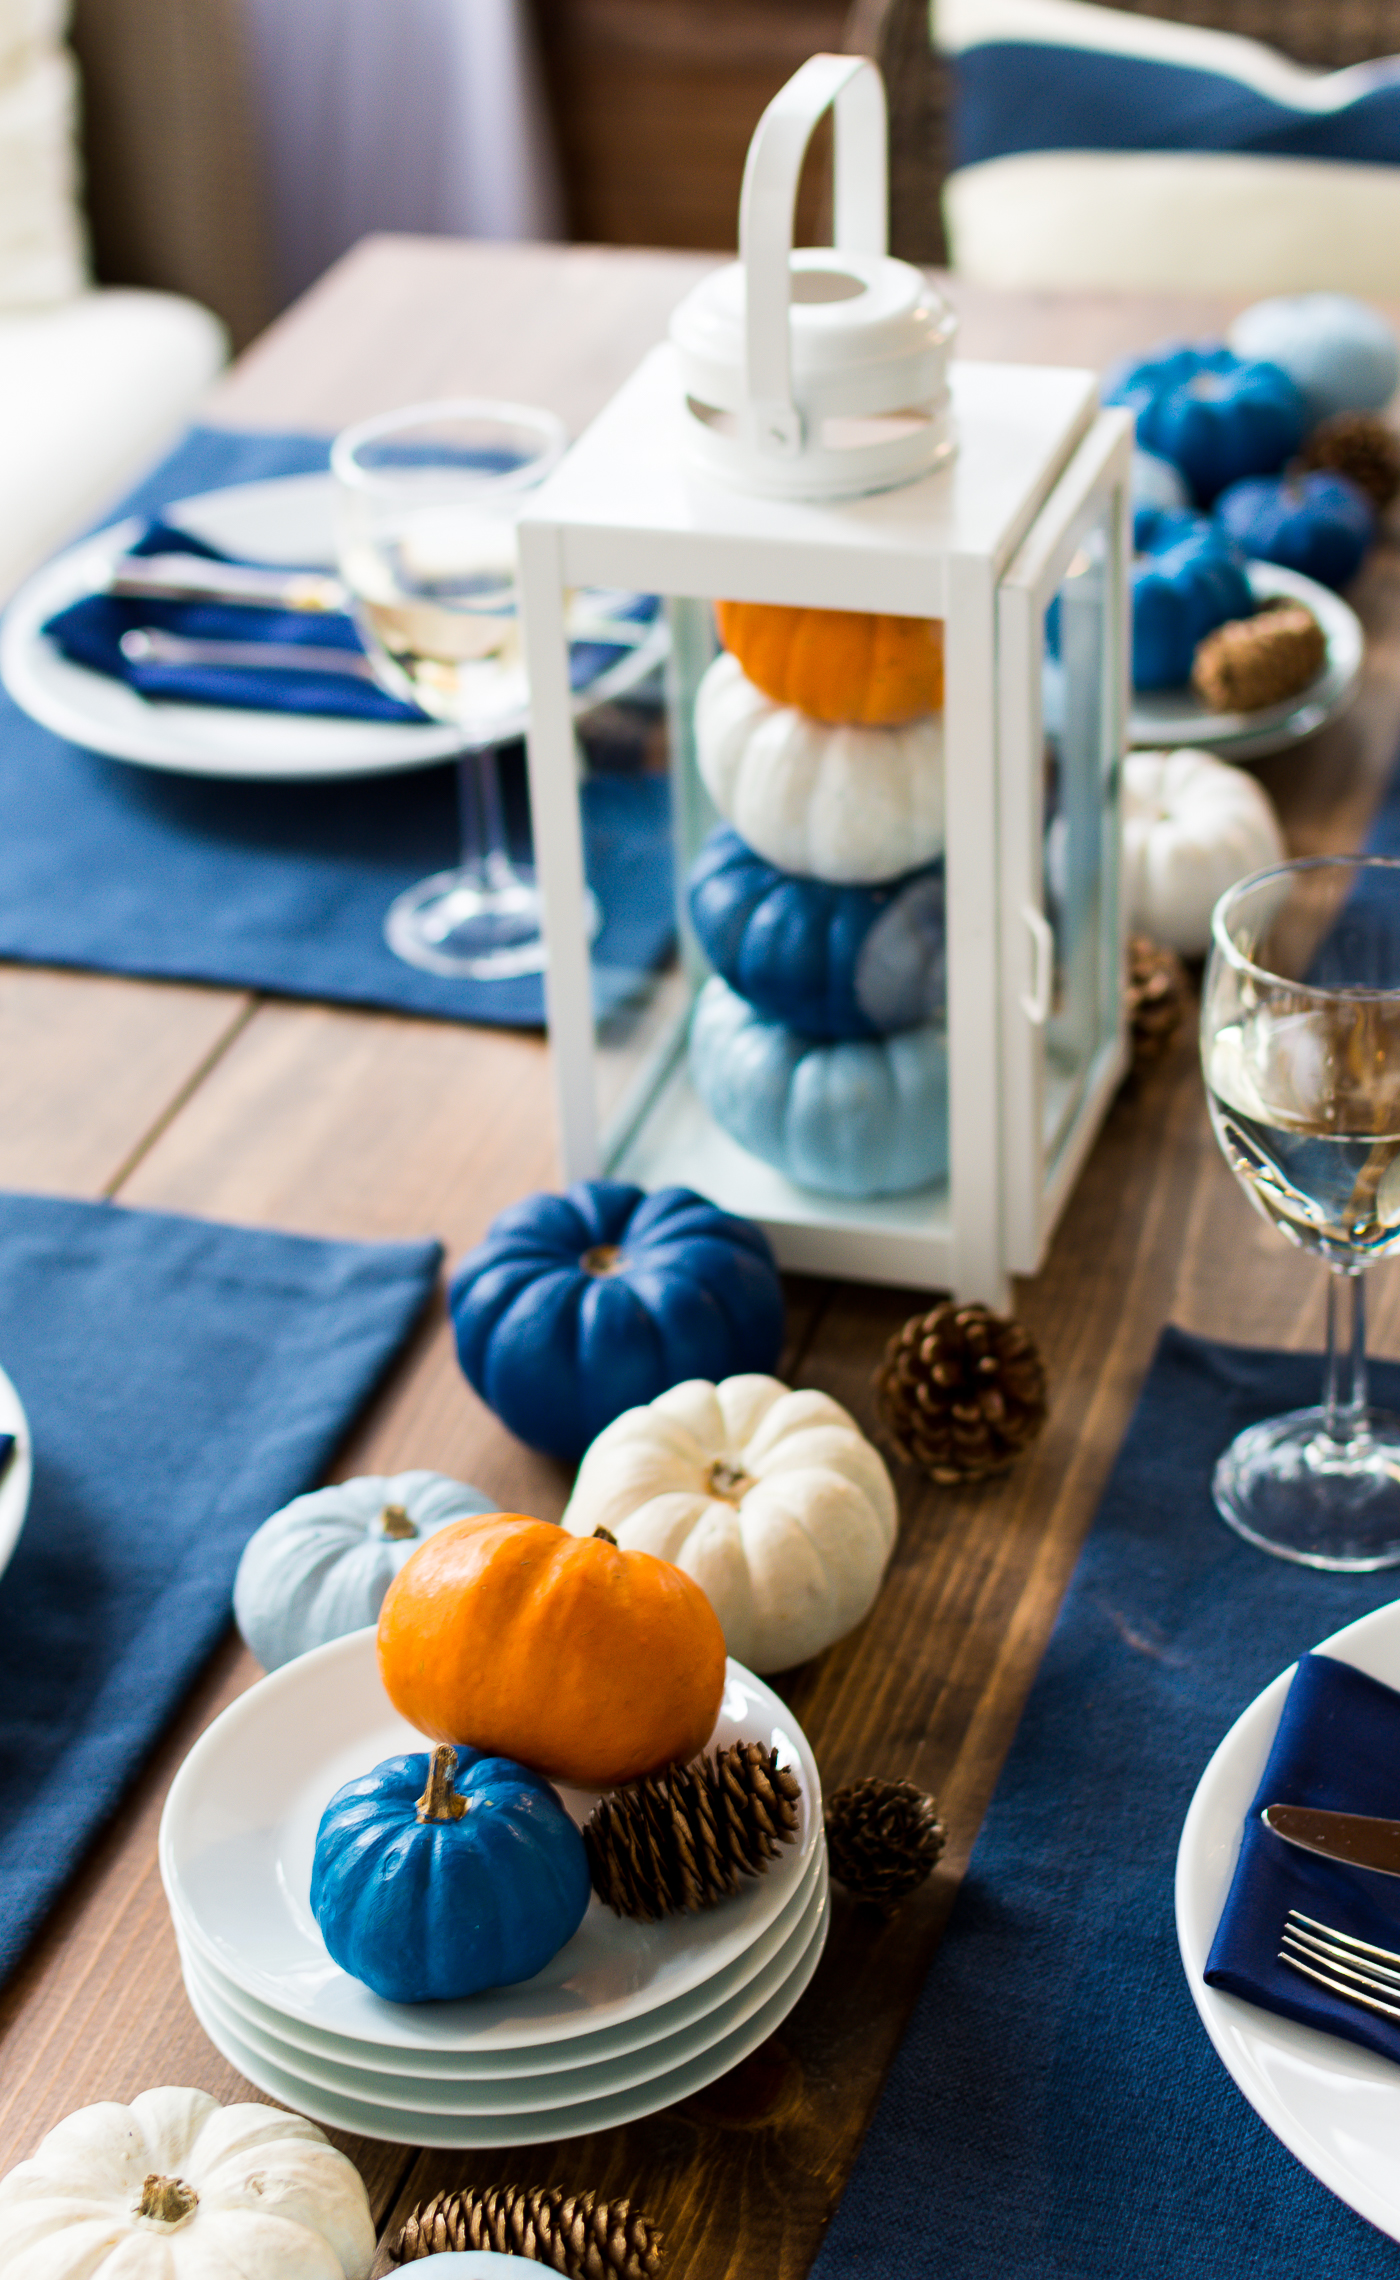 thanksgiving-table-setting-idea-navy-blue-white-orange-with-gallo-wine-pinot-grigio-itallstartedwithpait-com-33